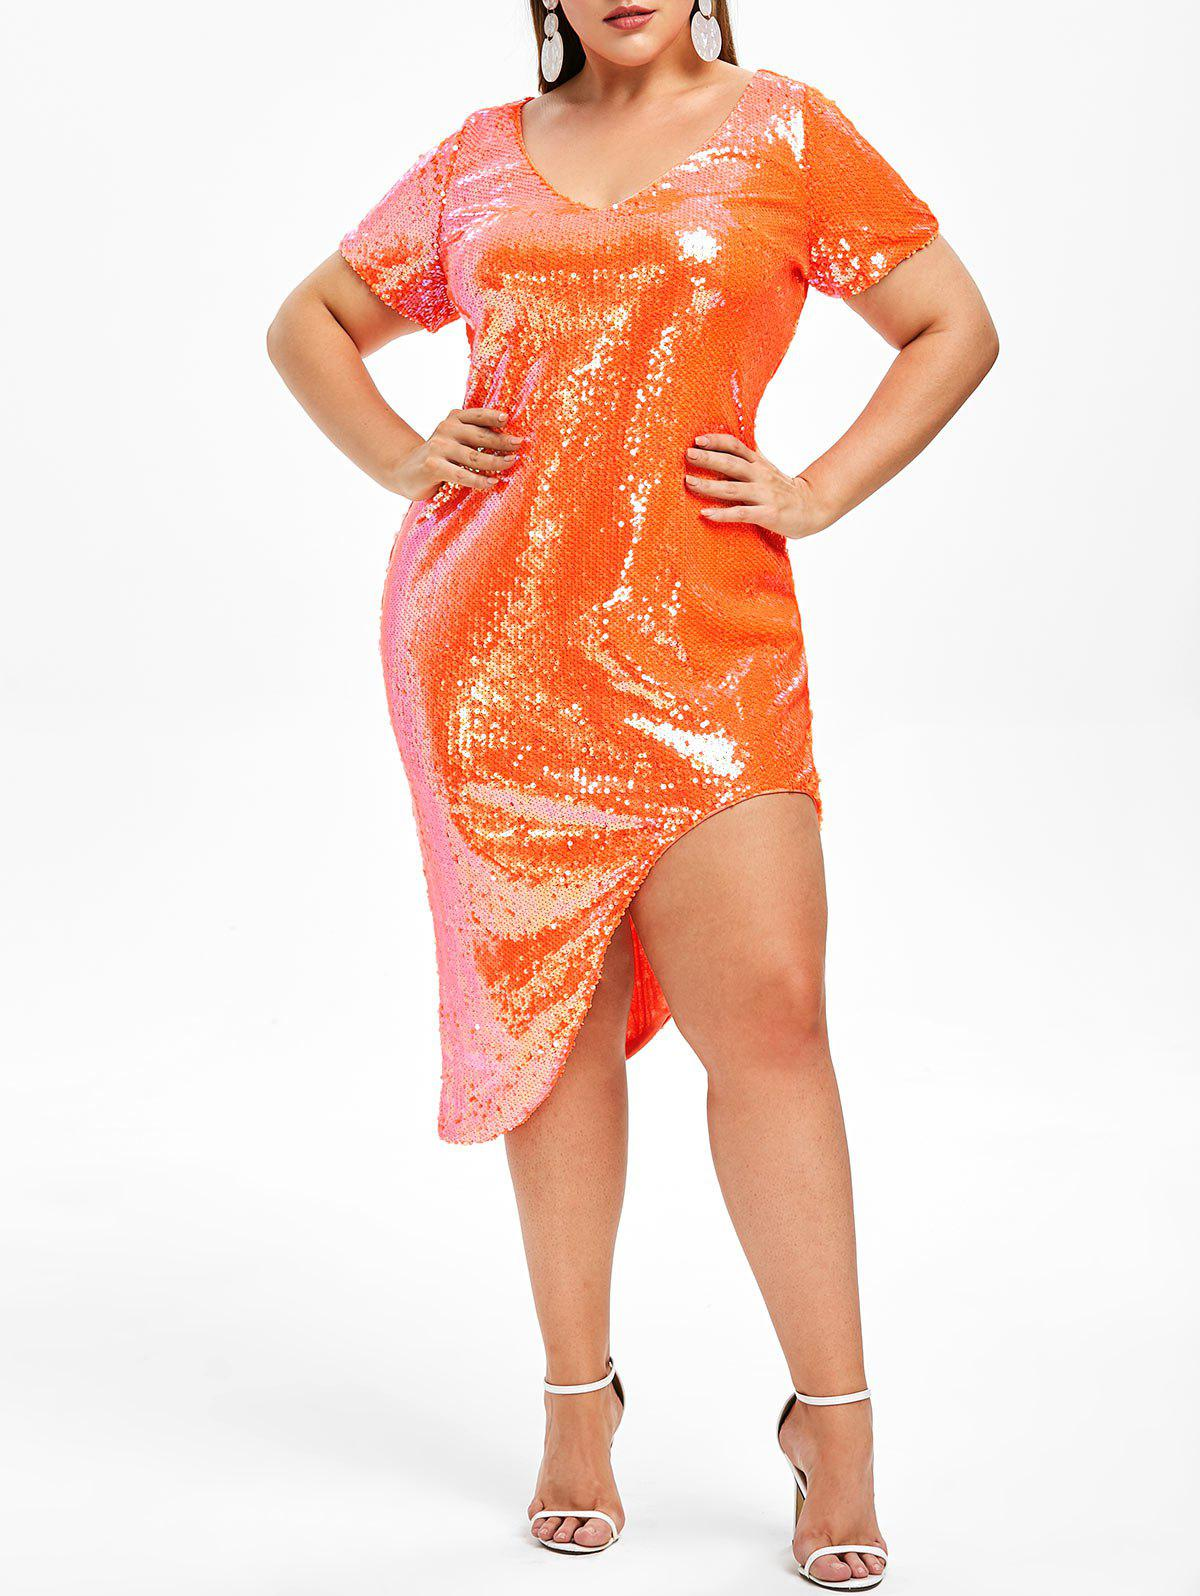 44% OFF] Rosegal Plus Size Sequined Neon Plunge Asymmetric Dress ...